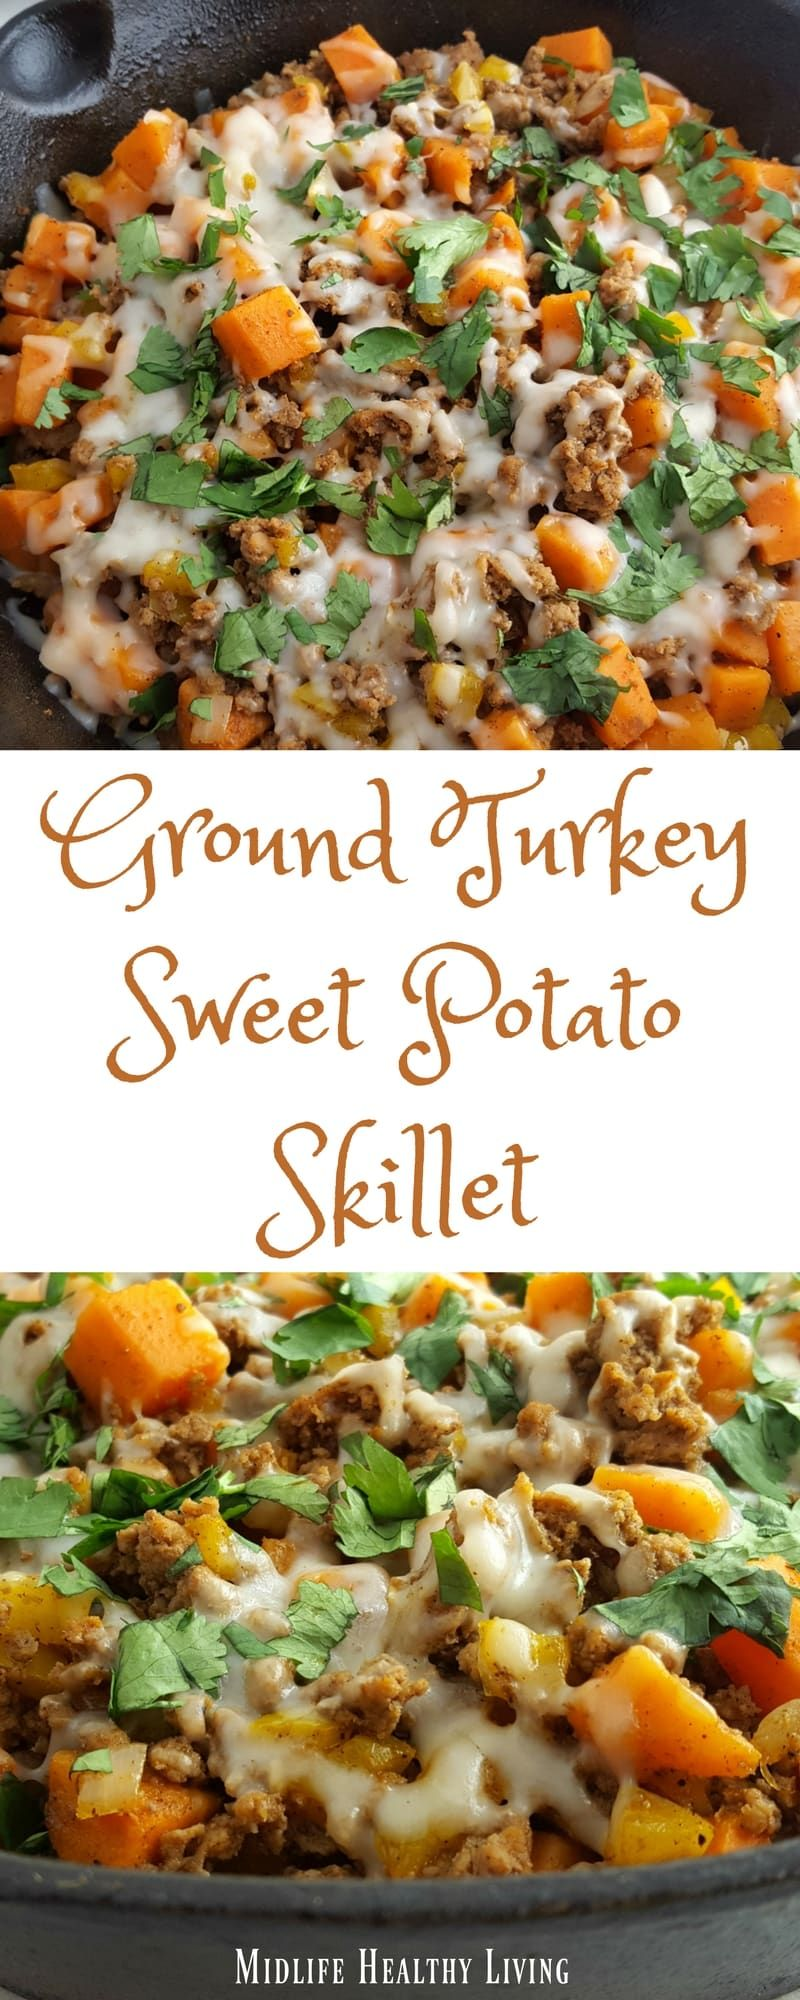 This ground turkey sweet potato skillet recipe is simple, easy, delicious, and W...